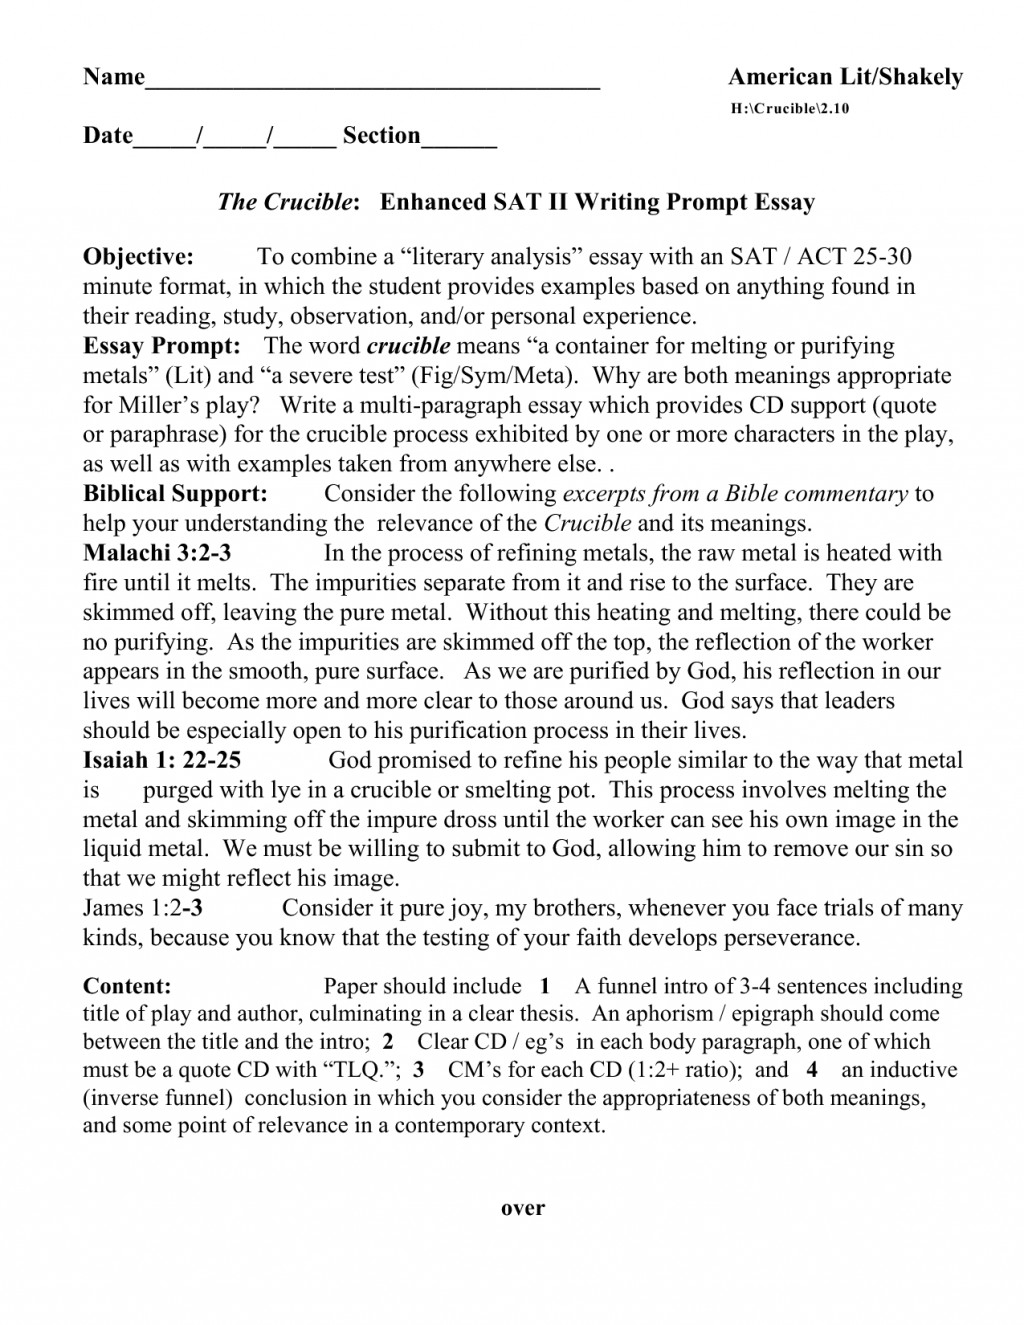 006 Sat Essays Quotes Quotesgram Is There An On The L Singular Essay Examples Writing Strategies Pdf 888 2018 Large